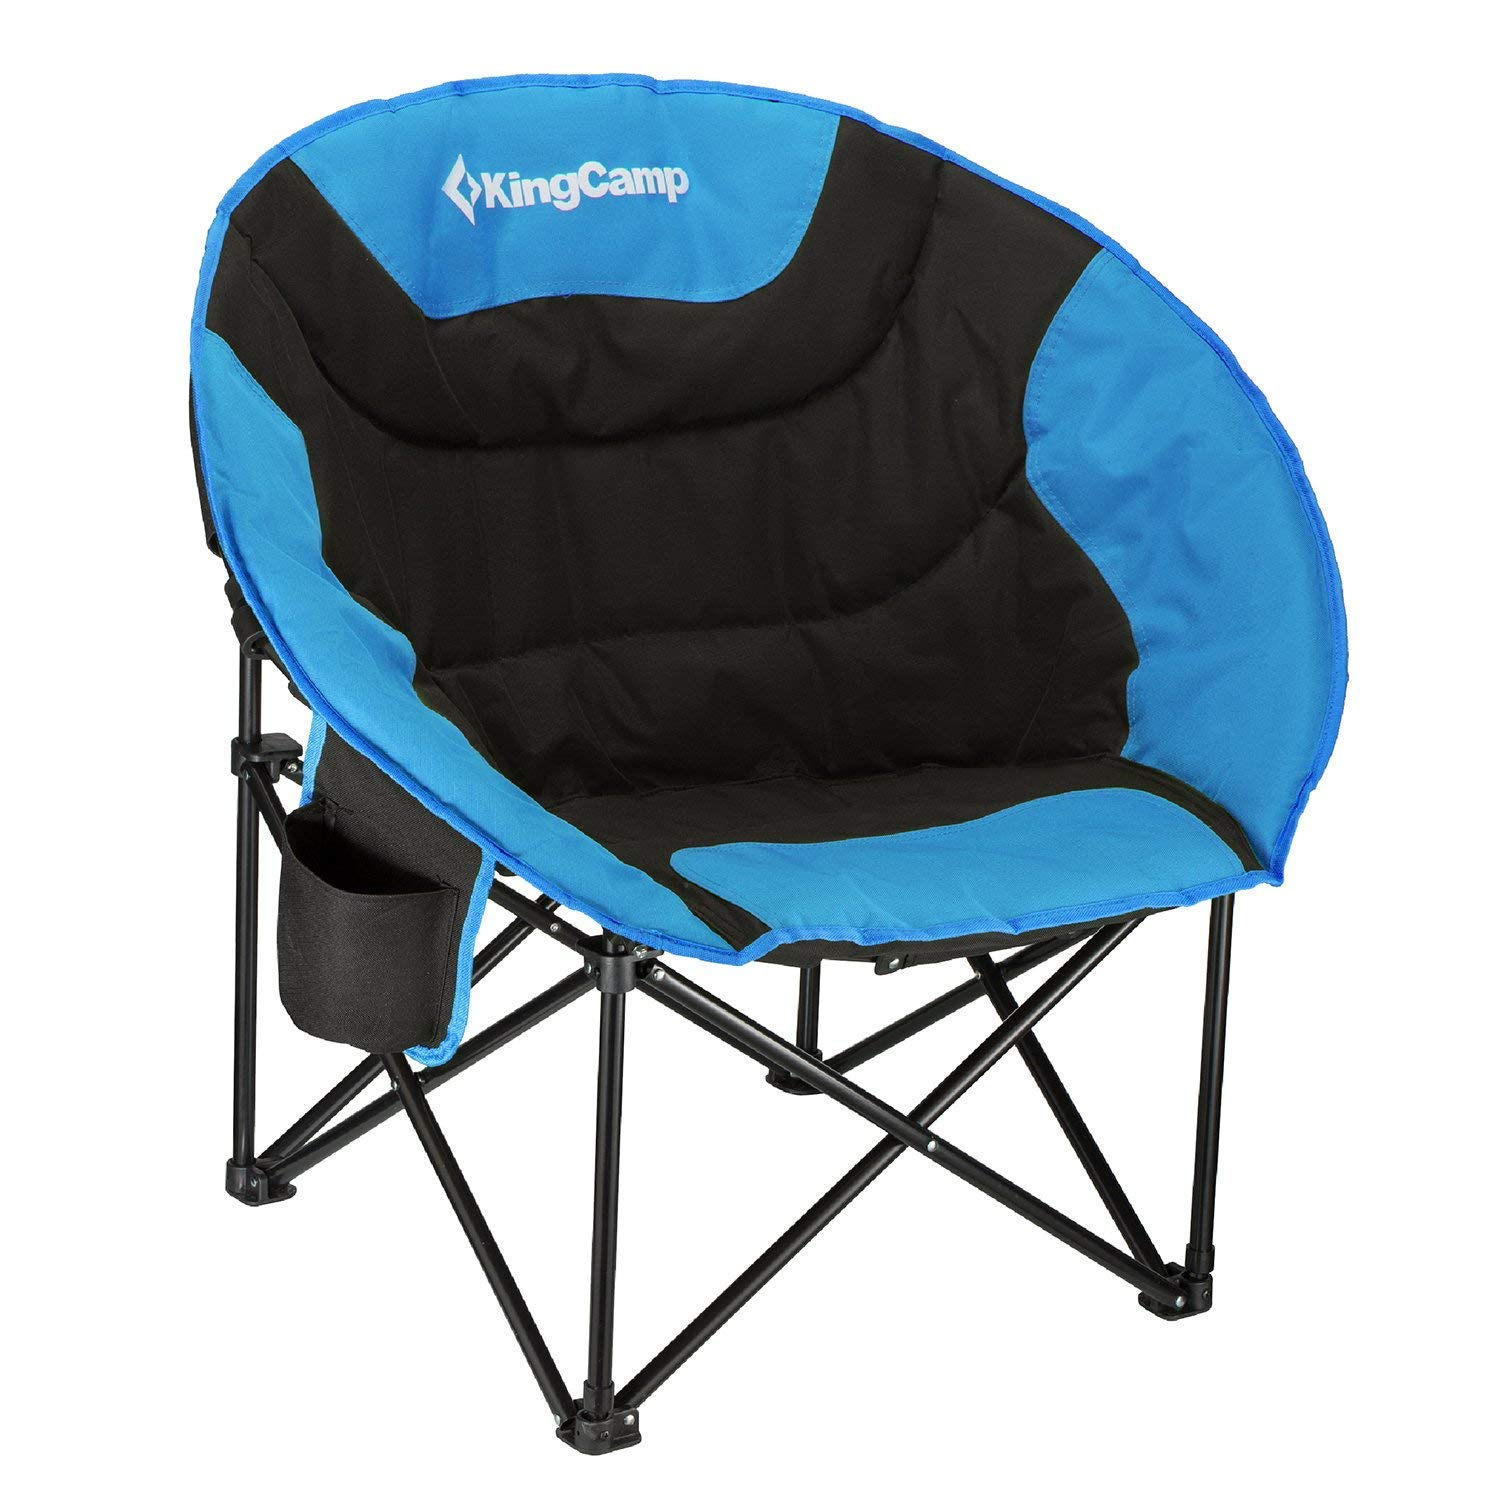 Wondrous Kingcamp Moon Saucer Camping Chair Cup Holder Steel Frame Folding Padded Round Portable Stable With Carry Bag Creativecarmelina Interior Chair Design Creativecarmelinacom